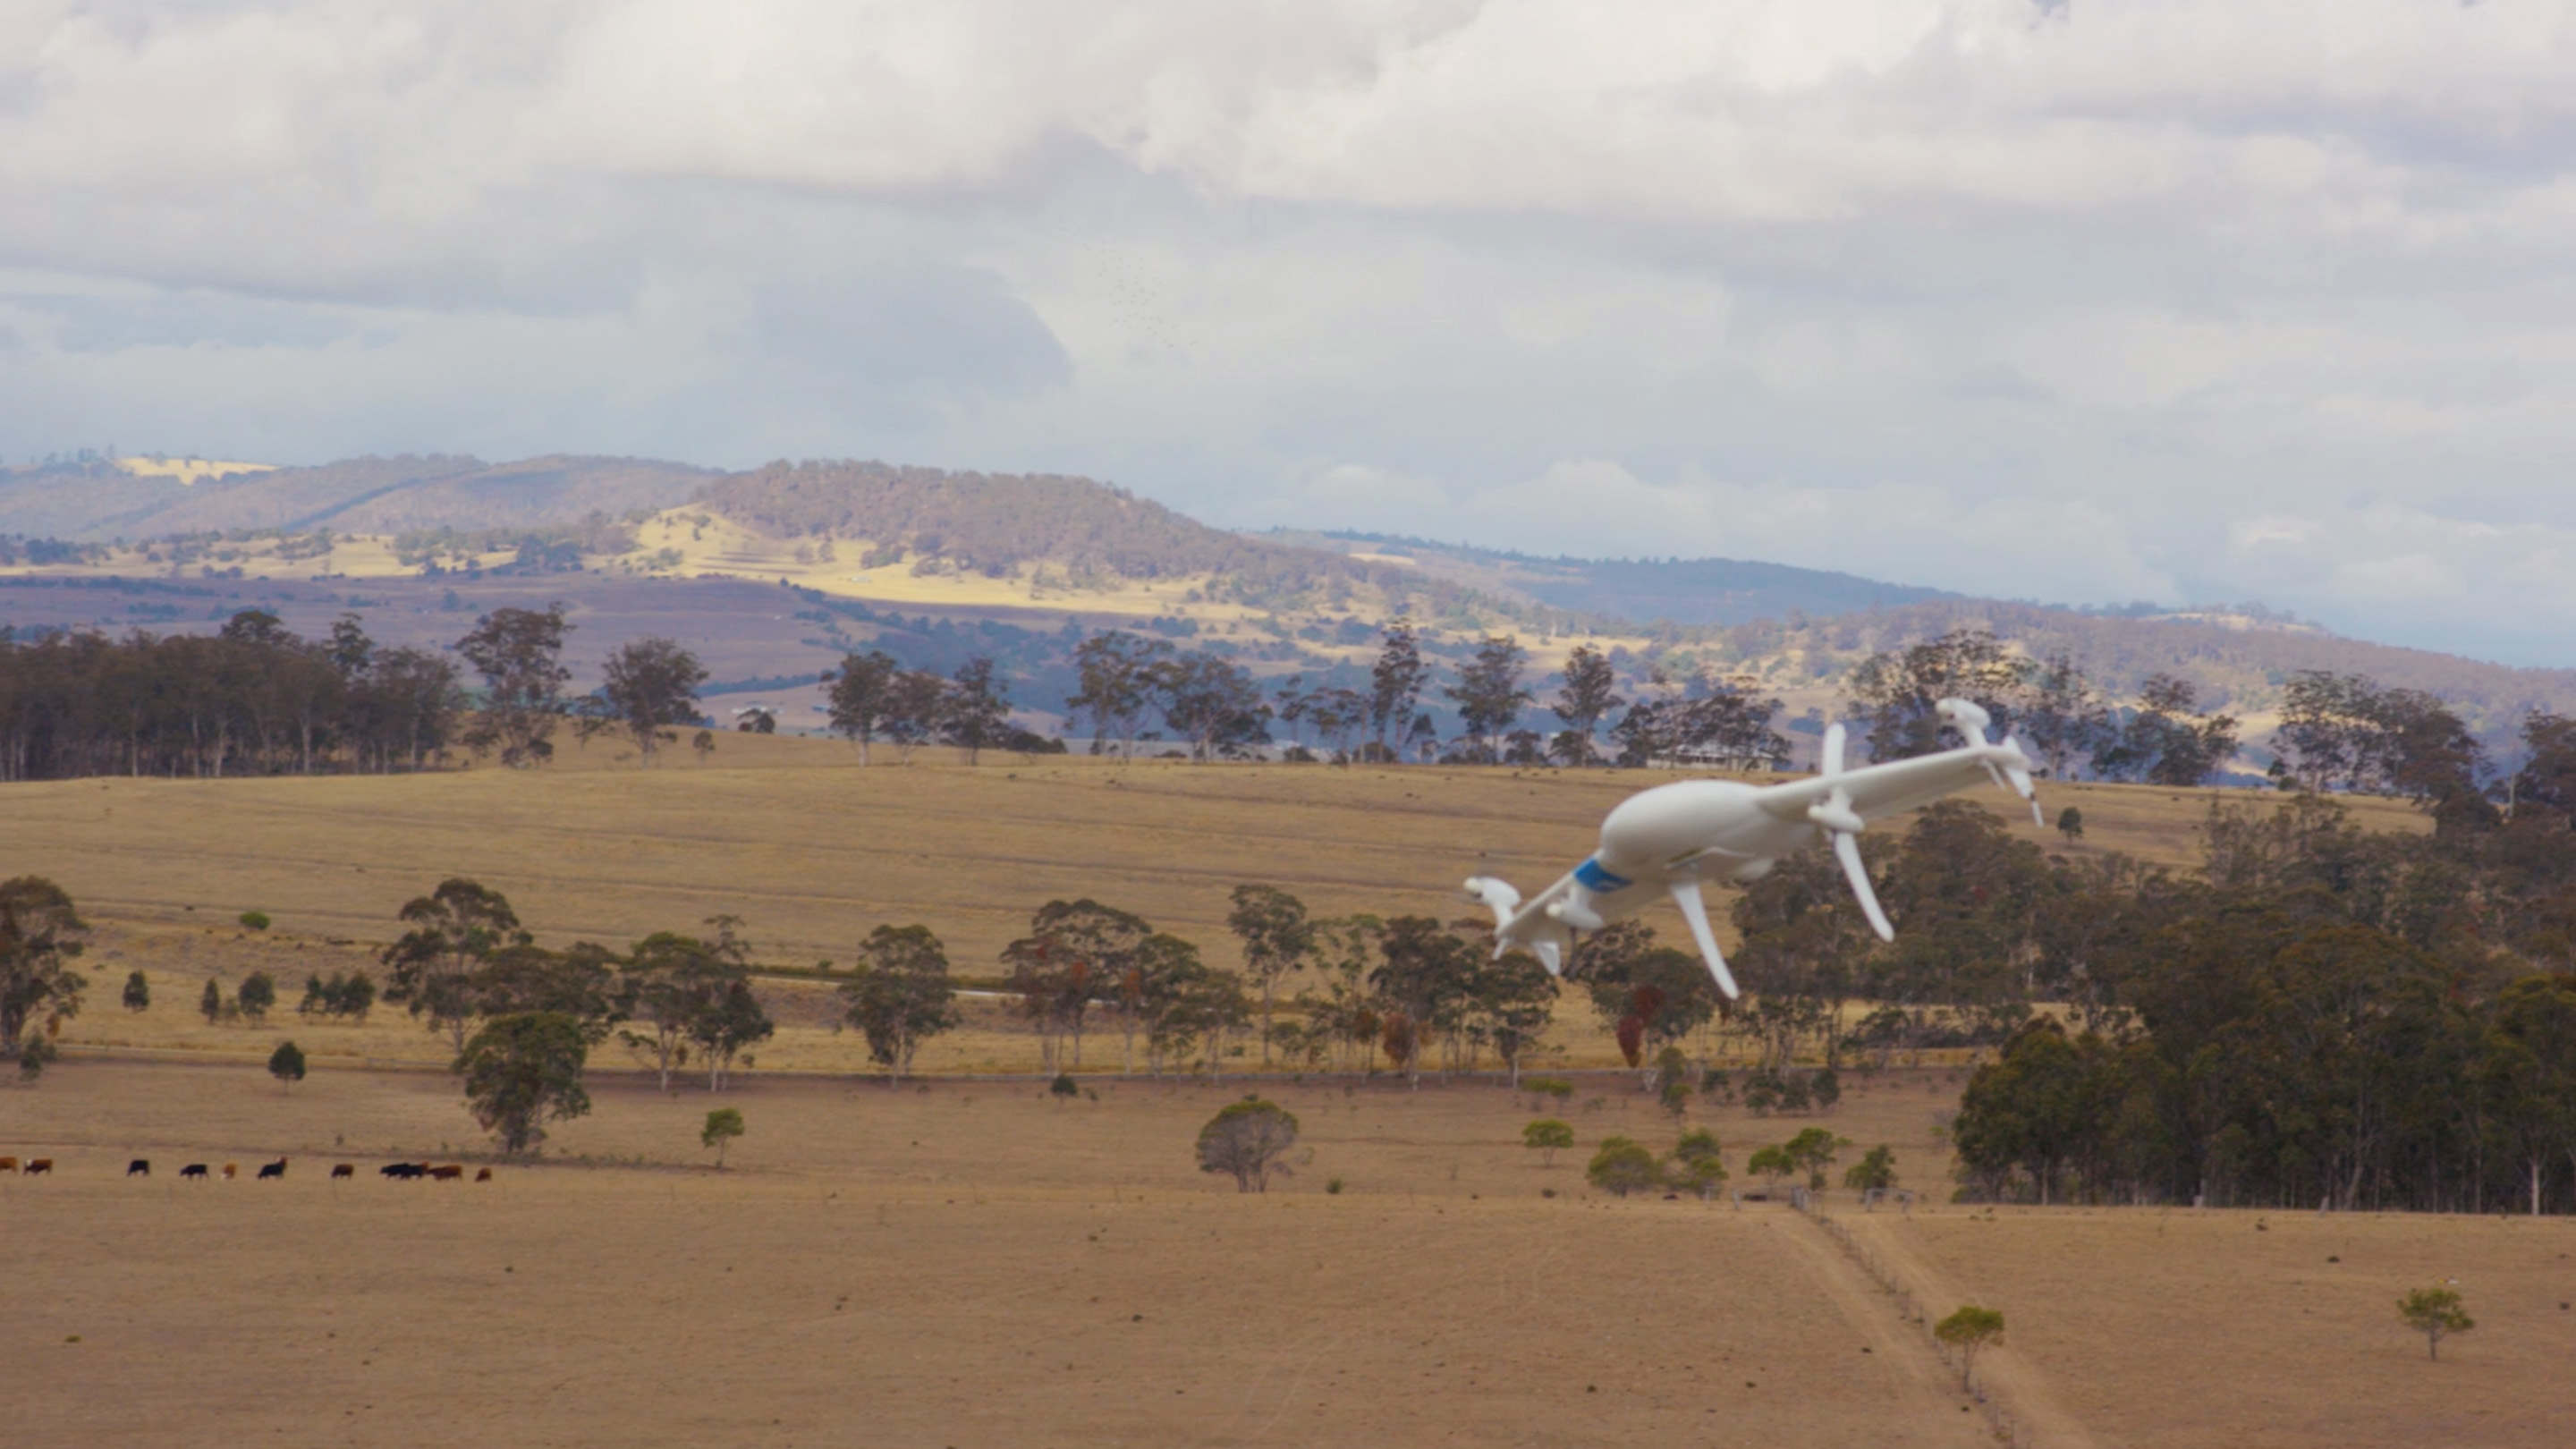 The Project Wing drone. Photo courtesy of Google.